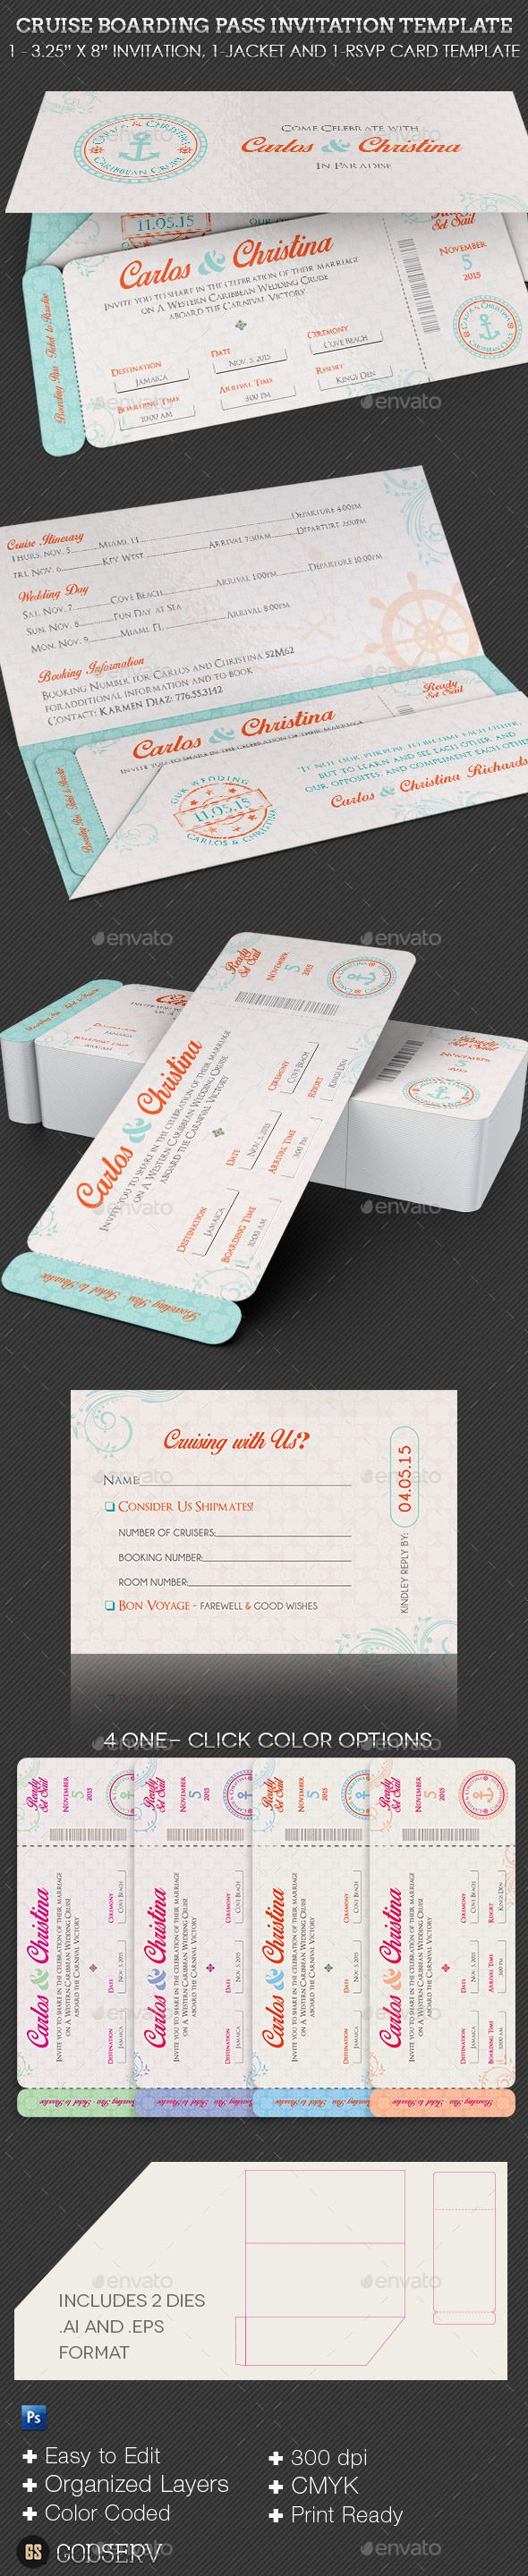 Wedding Cruise Boarding Pass Invitation Template - Weddings Cards & Invites